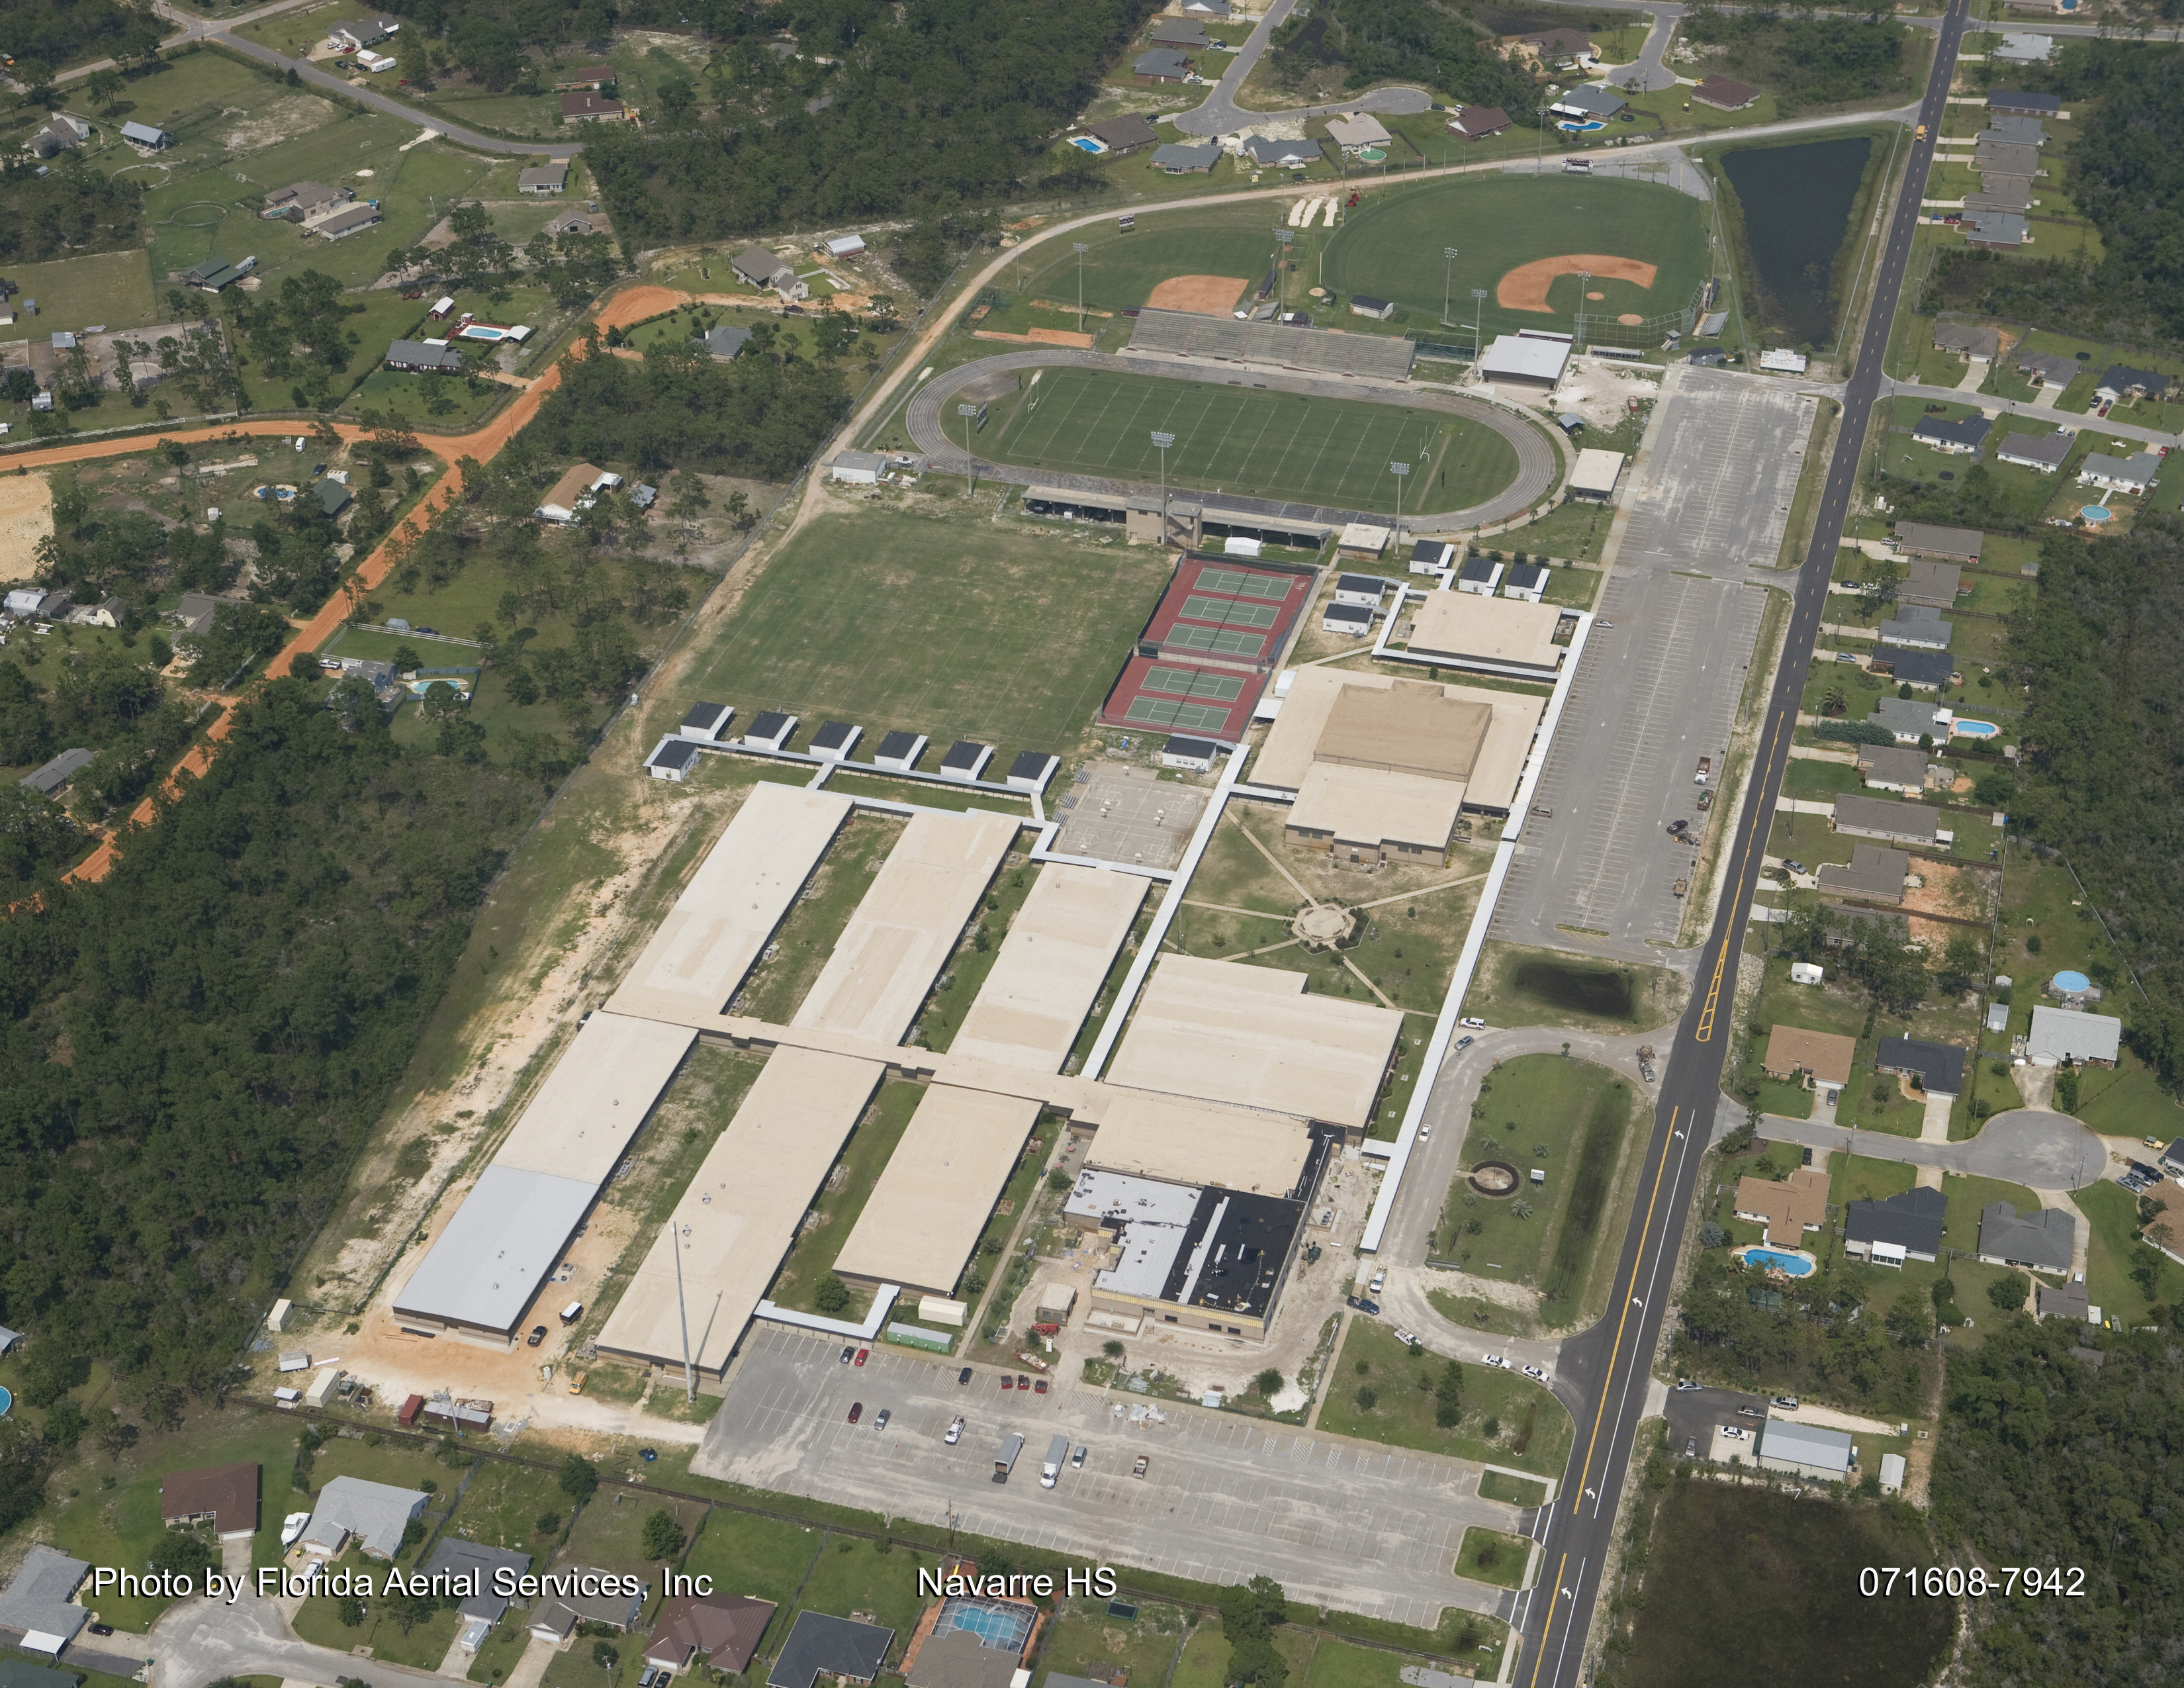 Navarre High School Aerial